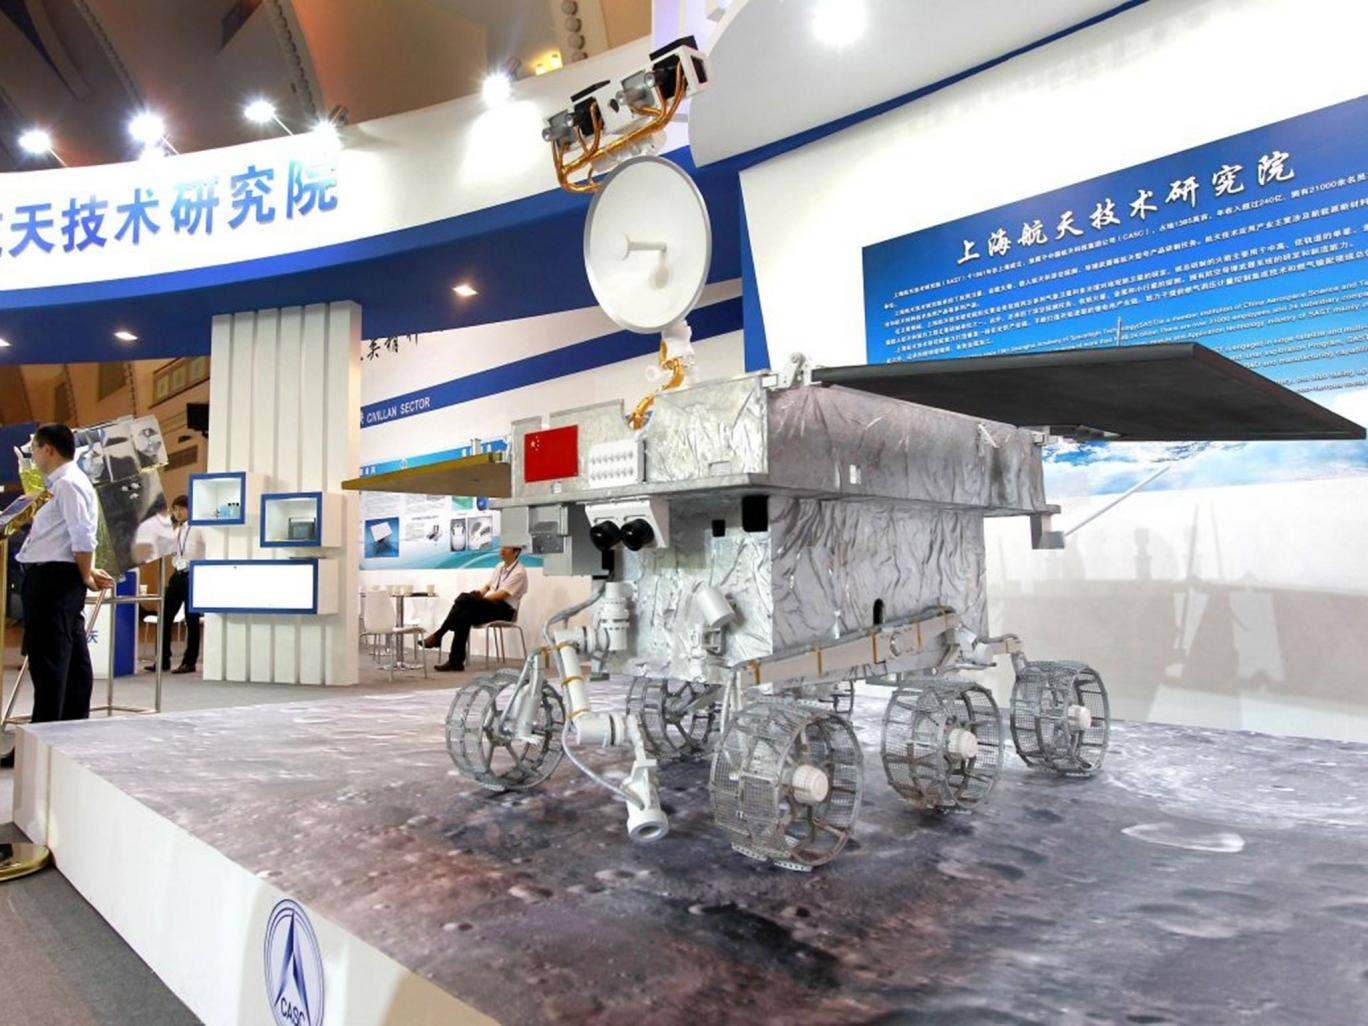 A model of Yutu, China's Moon rover, named after the pet rabbit of Chang'e, the goddess of the Moon in Chinese mythology